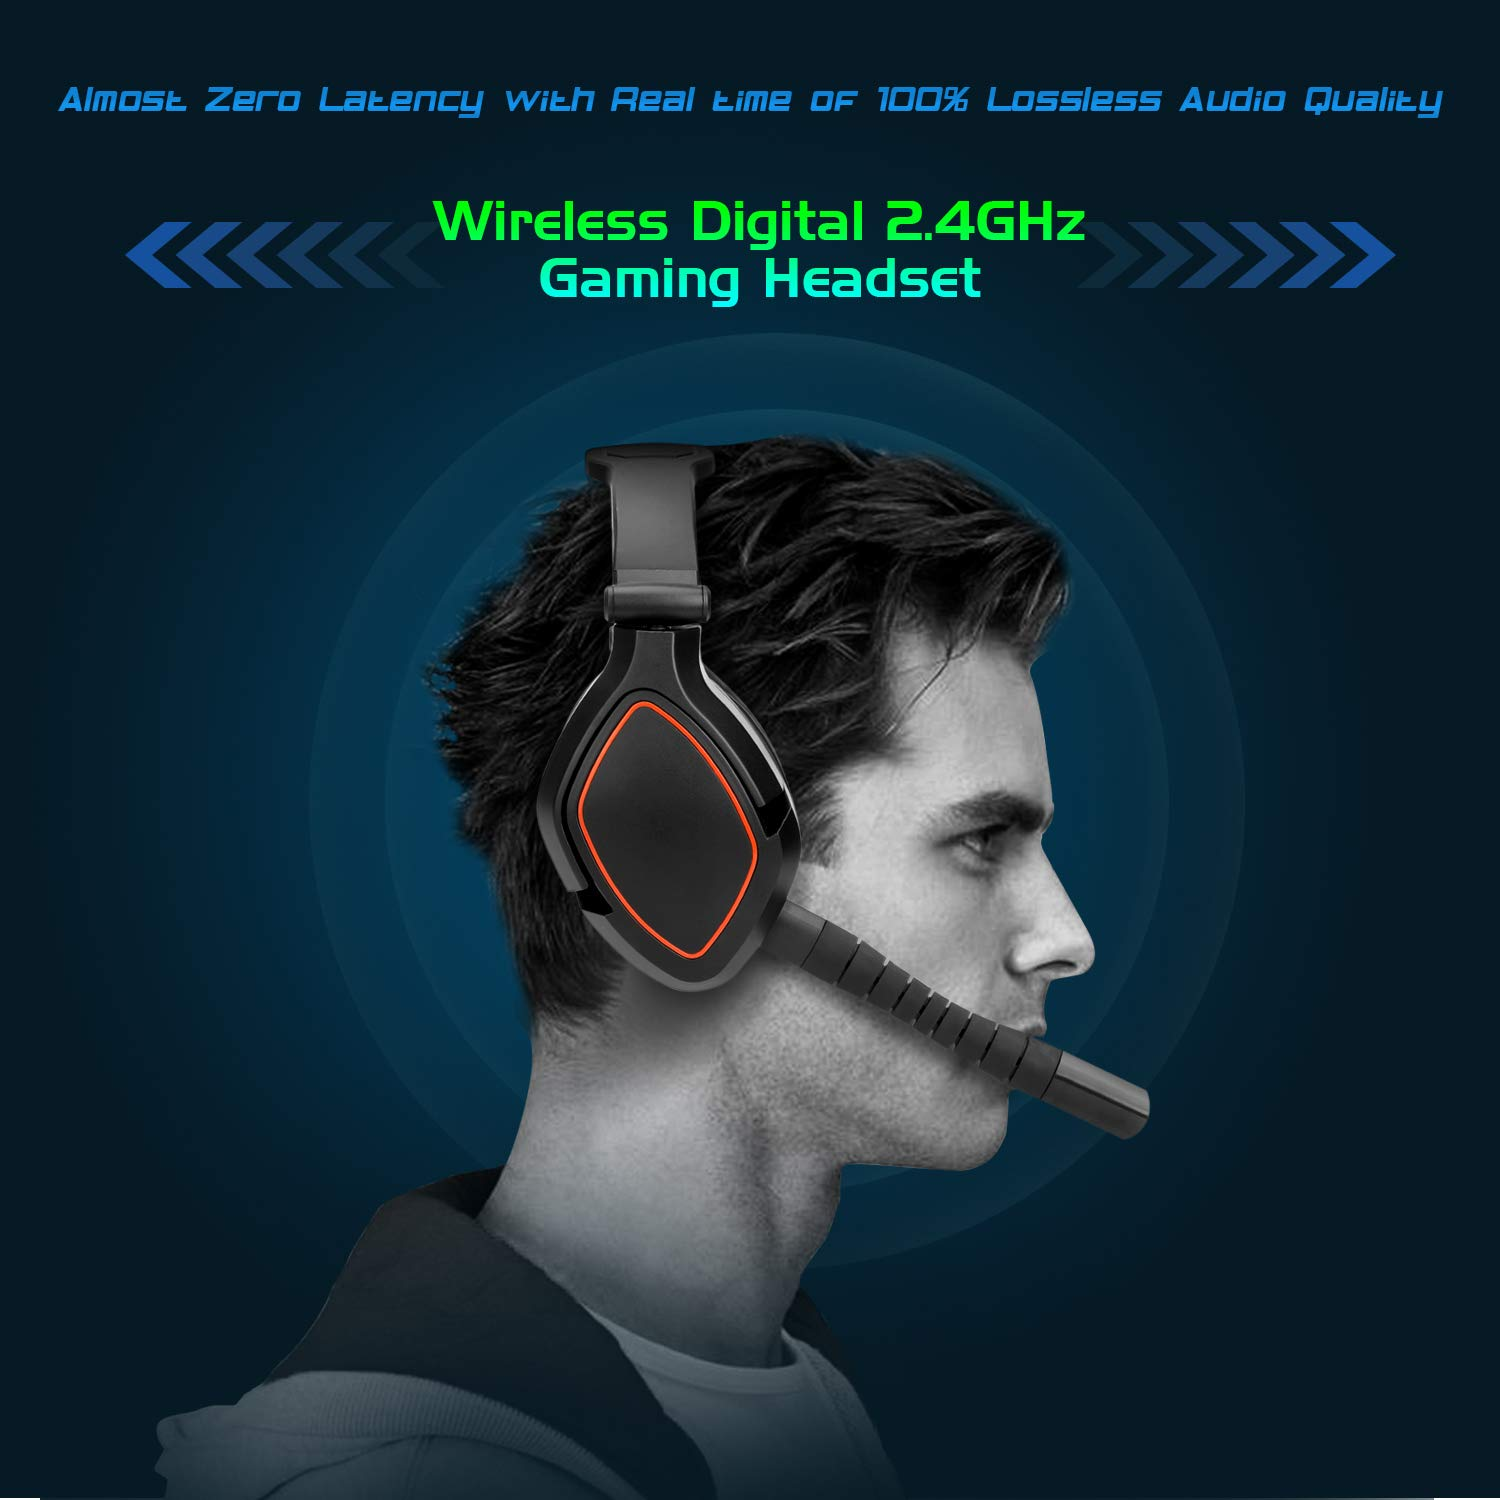 664033cc75f Amazon.com: HUHD 2.4GHz Wireless Gaming Headset 7.1 Surround Sound Game  Headphone Detachable Mic USB Transmitter with Optical Fiber and AUX Audio  Jack for ...